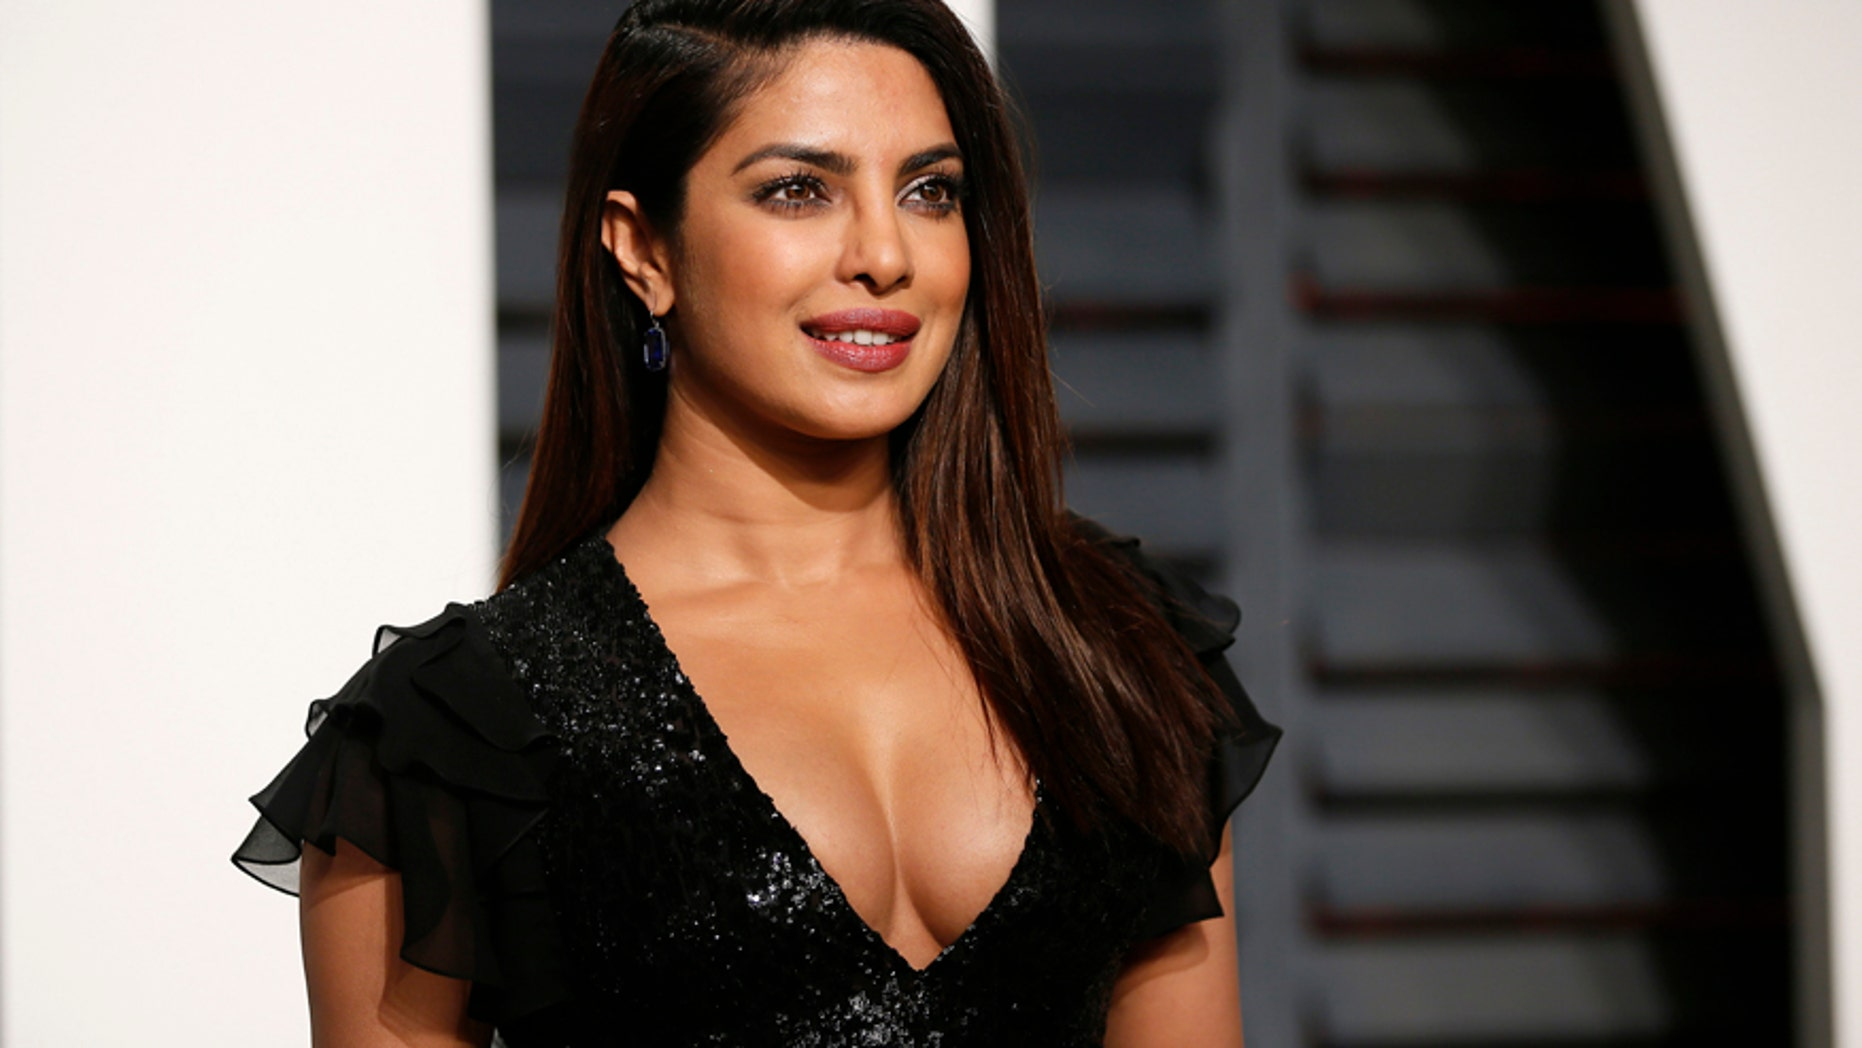 Actress Priyanka Chopra arrives at the 89th Academy Awards' Oscars Vanity Fair Party in Beverly Hills, California on February, 27, 2017.